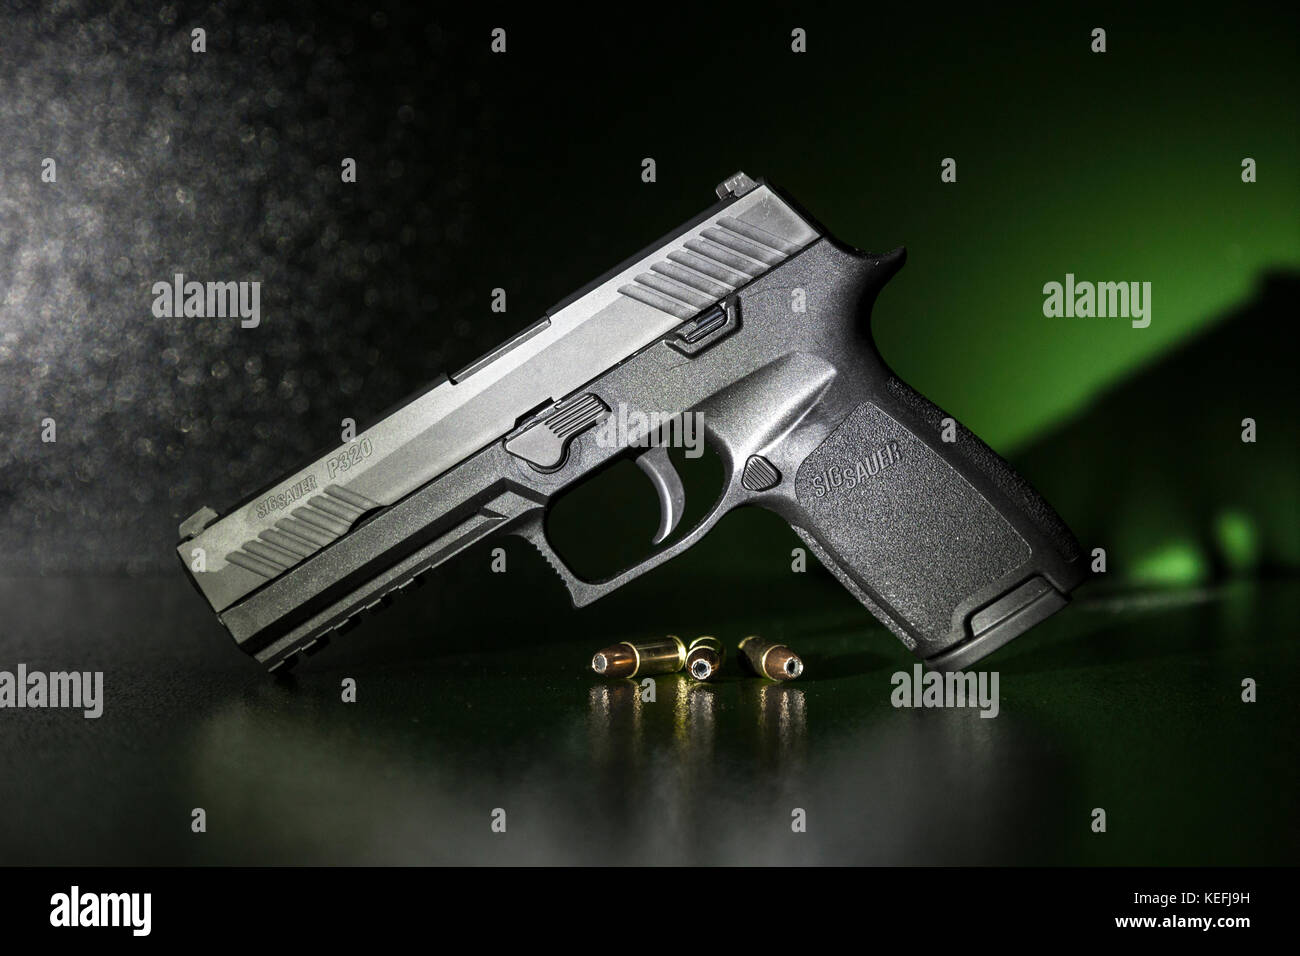 Pistol SIG SAUER P320 Full-Size 9mm Stock Photo: 163842157 - Alamy